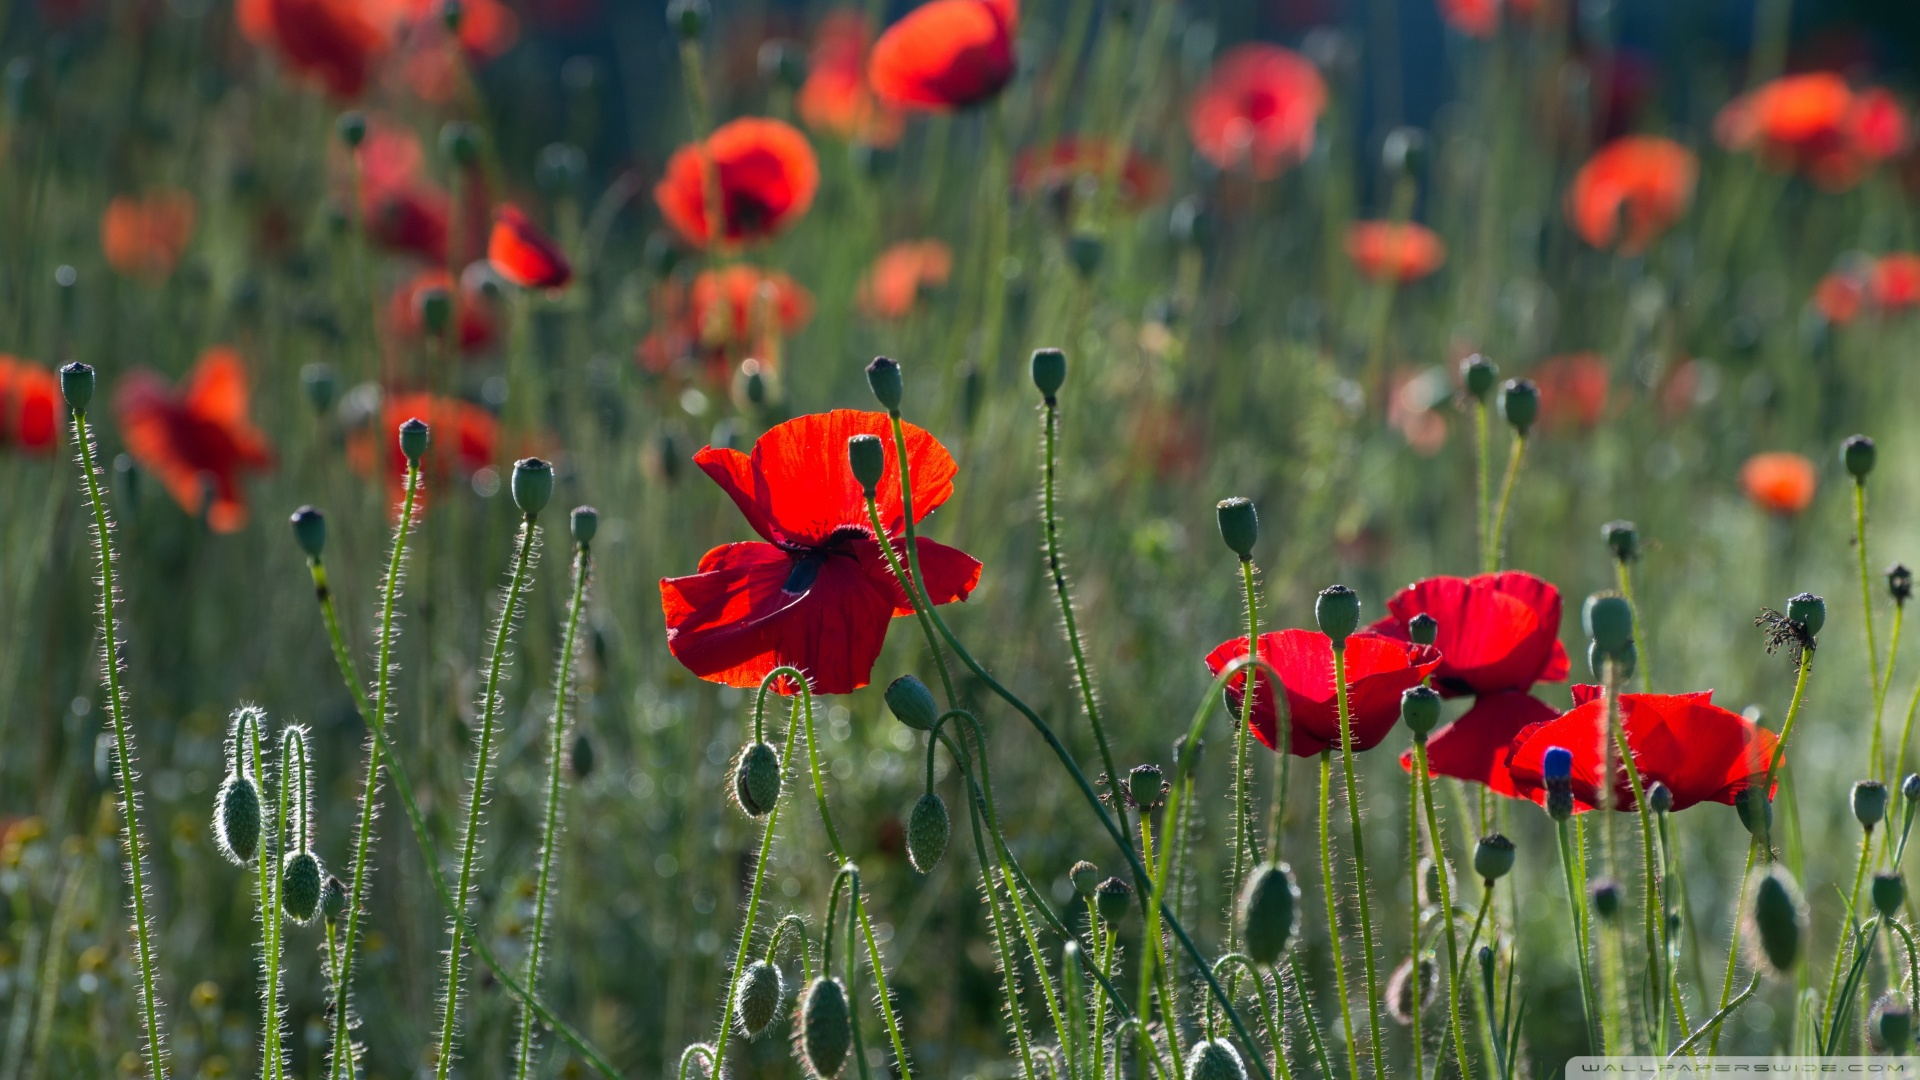 Hd Wallpapers For Mobile Free Download 480x800 Red Poppies 4k Hd Desktop Wallpaper For 4k Ultra Hd Tv